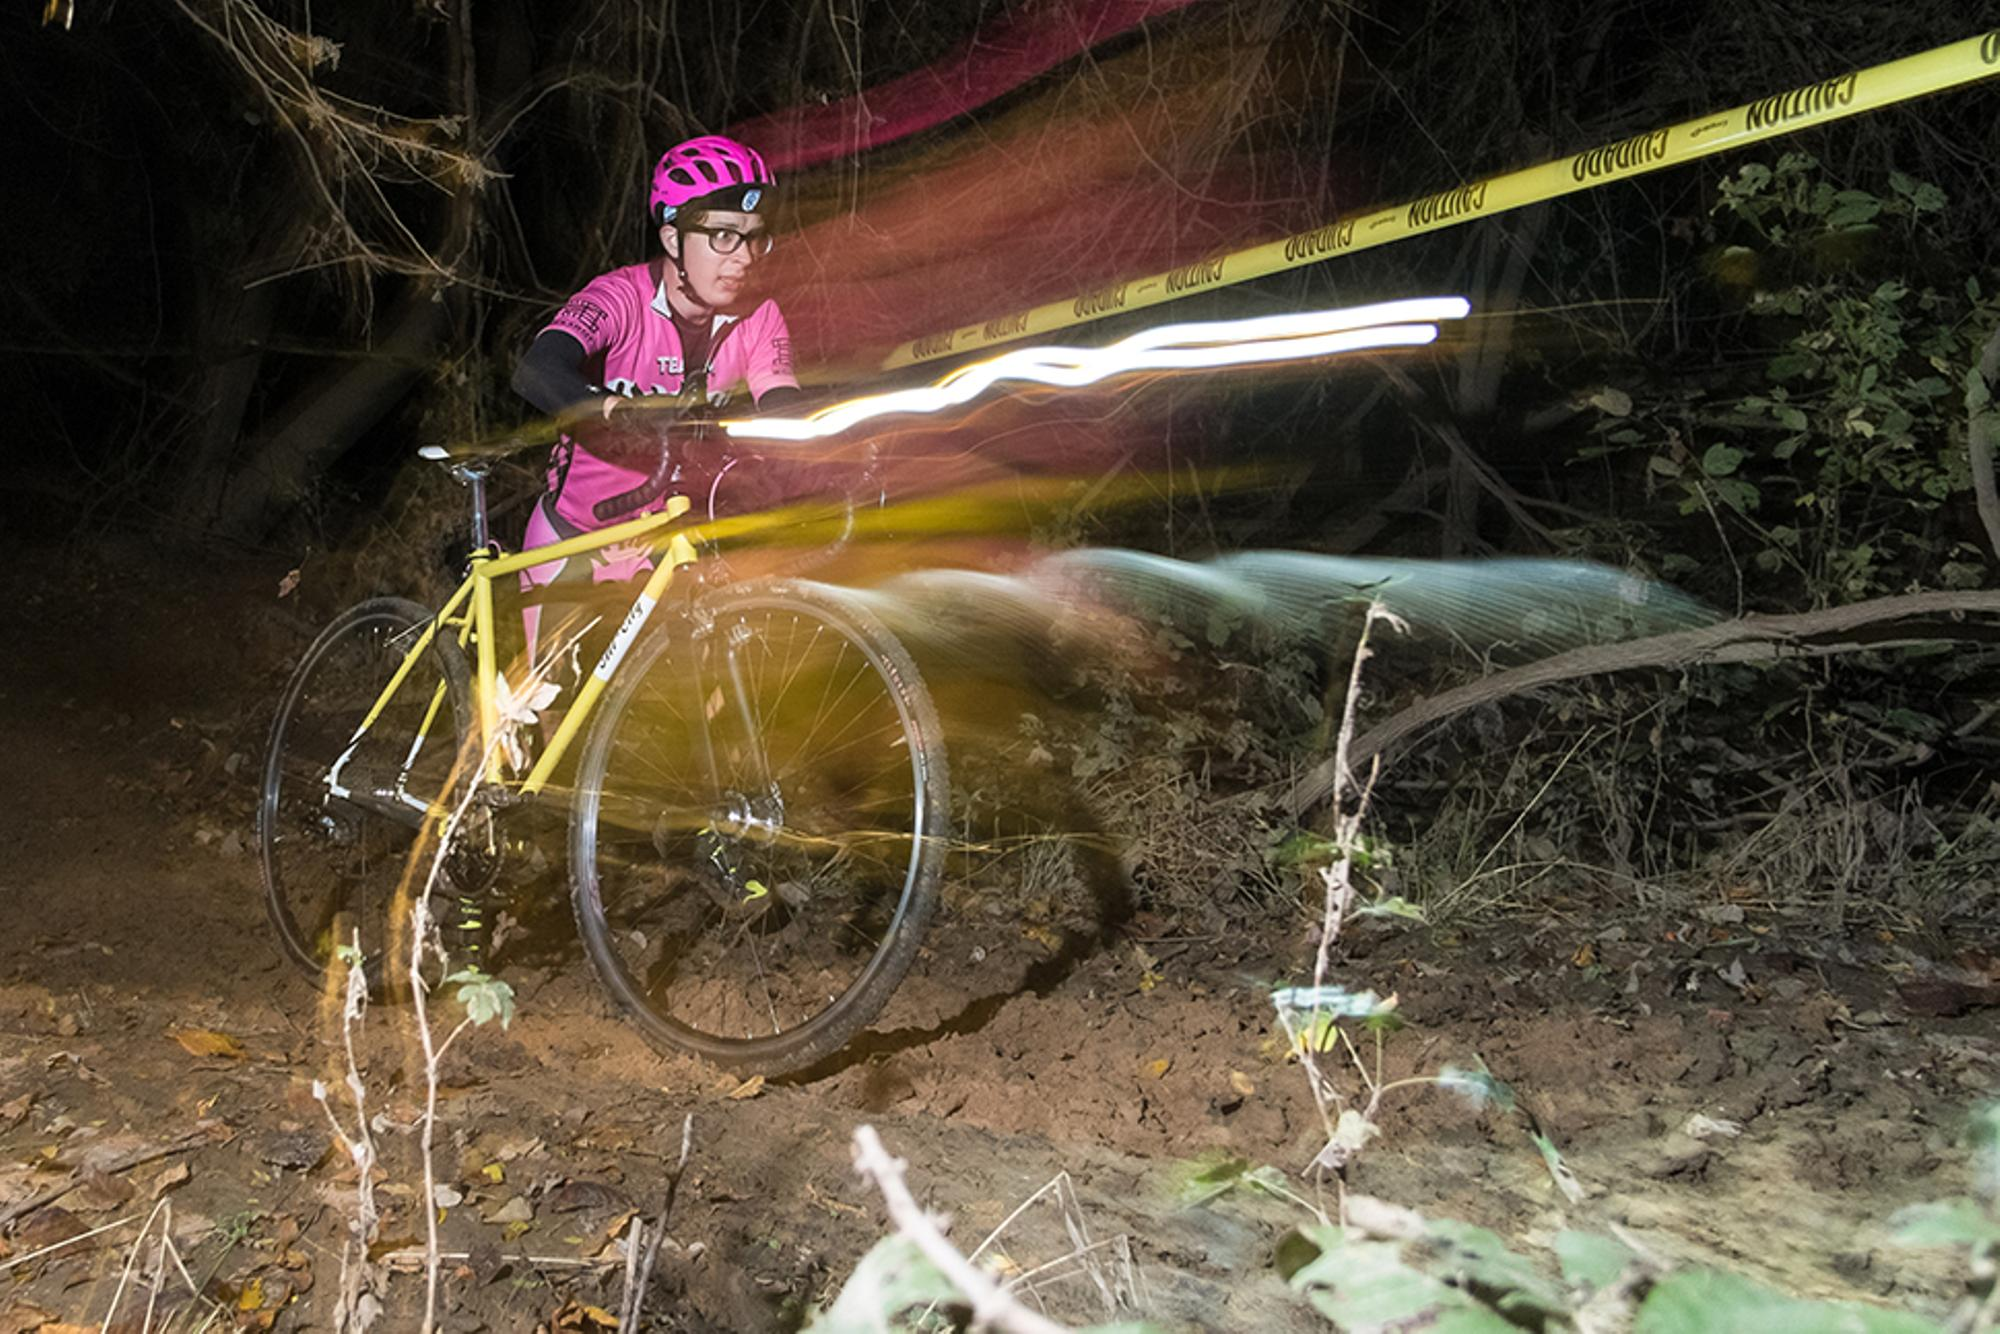 The muddy forest / photo: Nick Cantrell